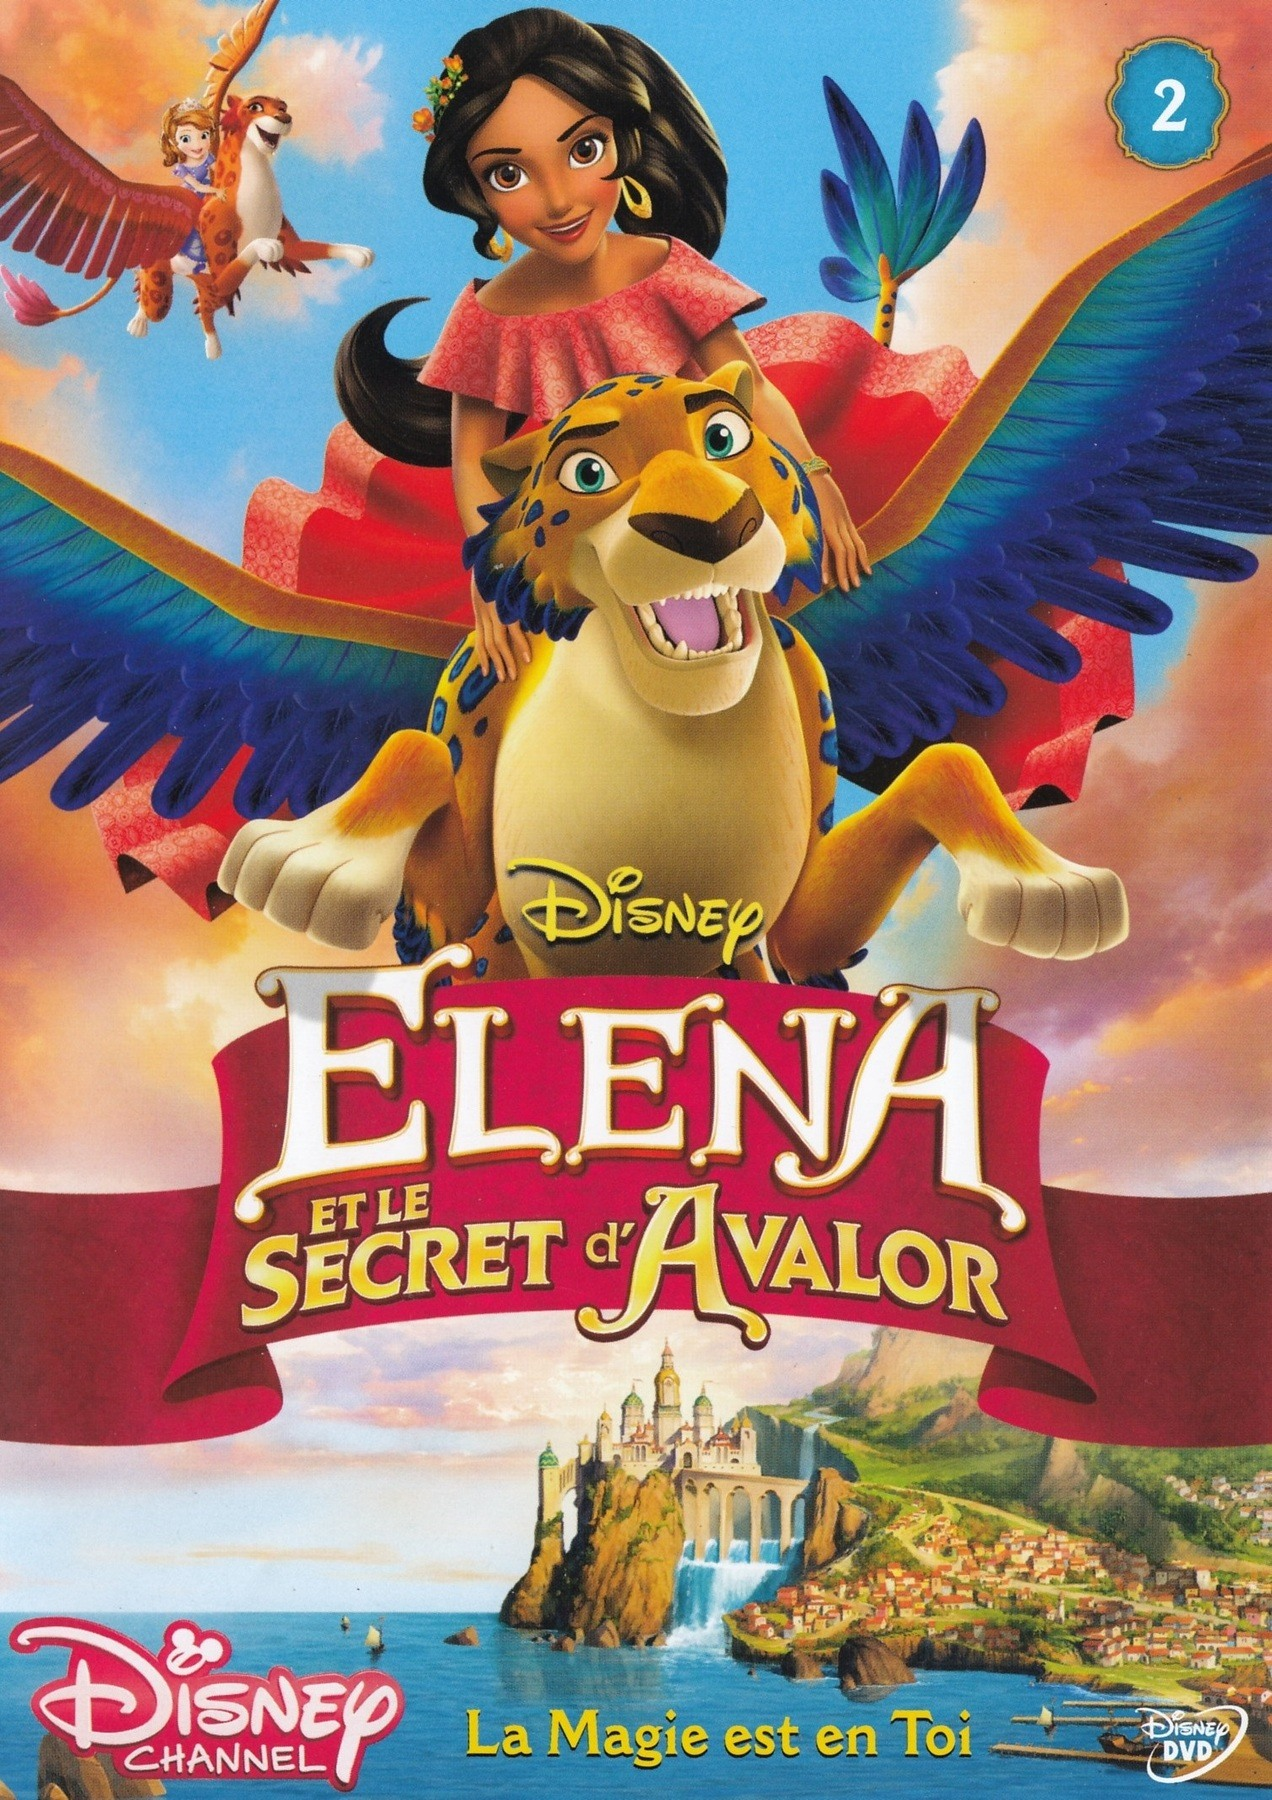 affiche poster elena secret avalor disney